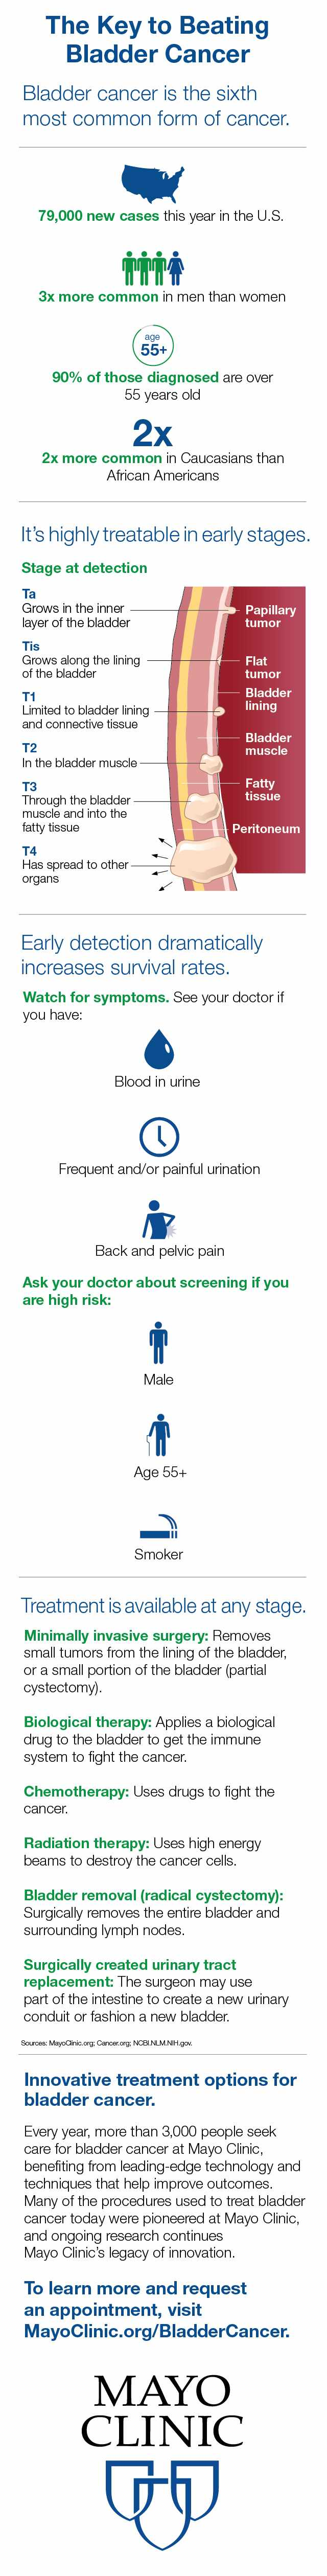 Infographic for the Key to Beating Bladder Cancer